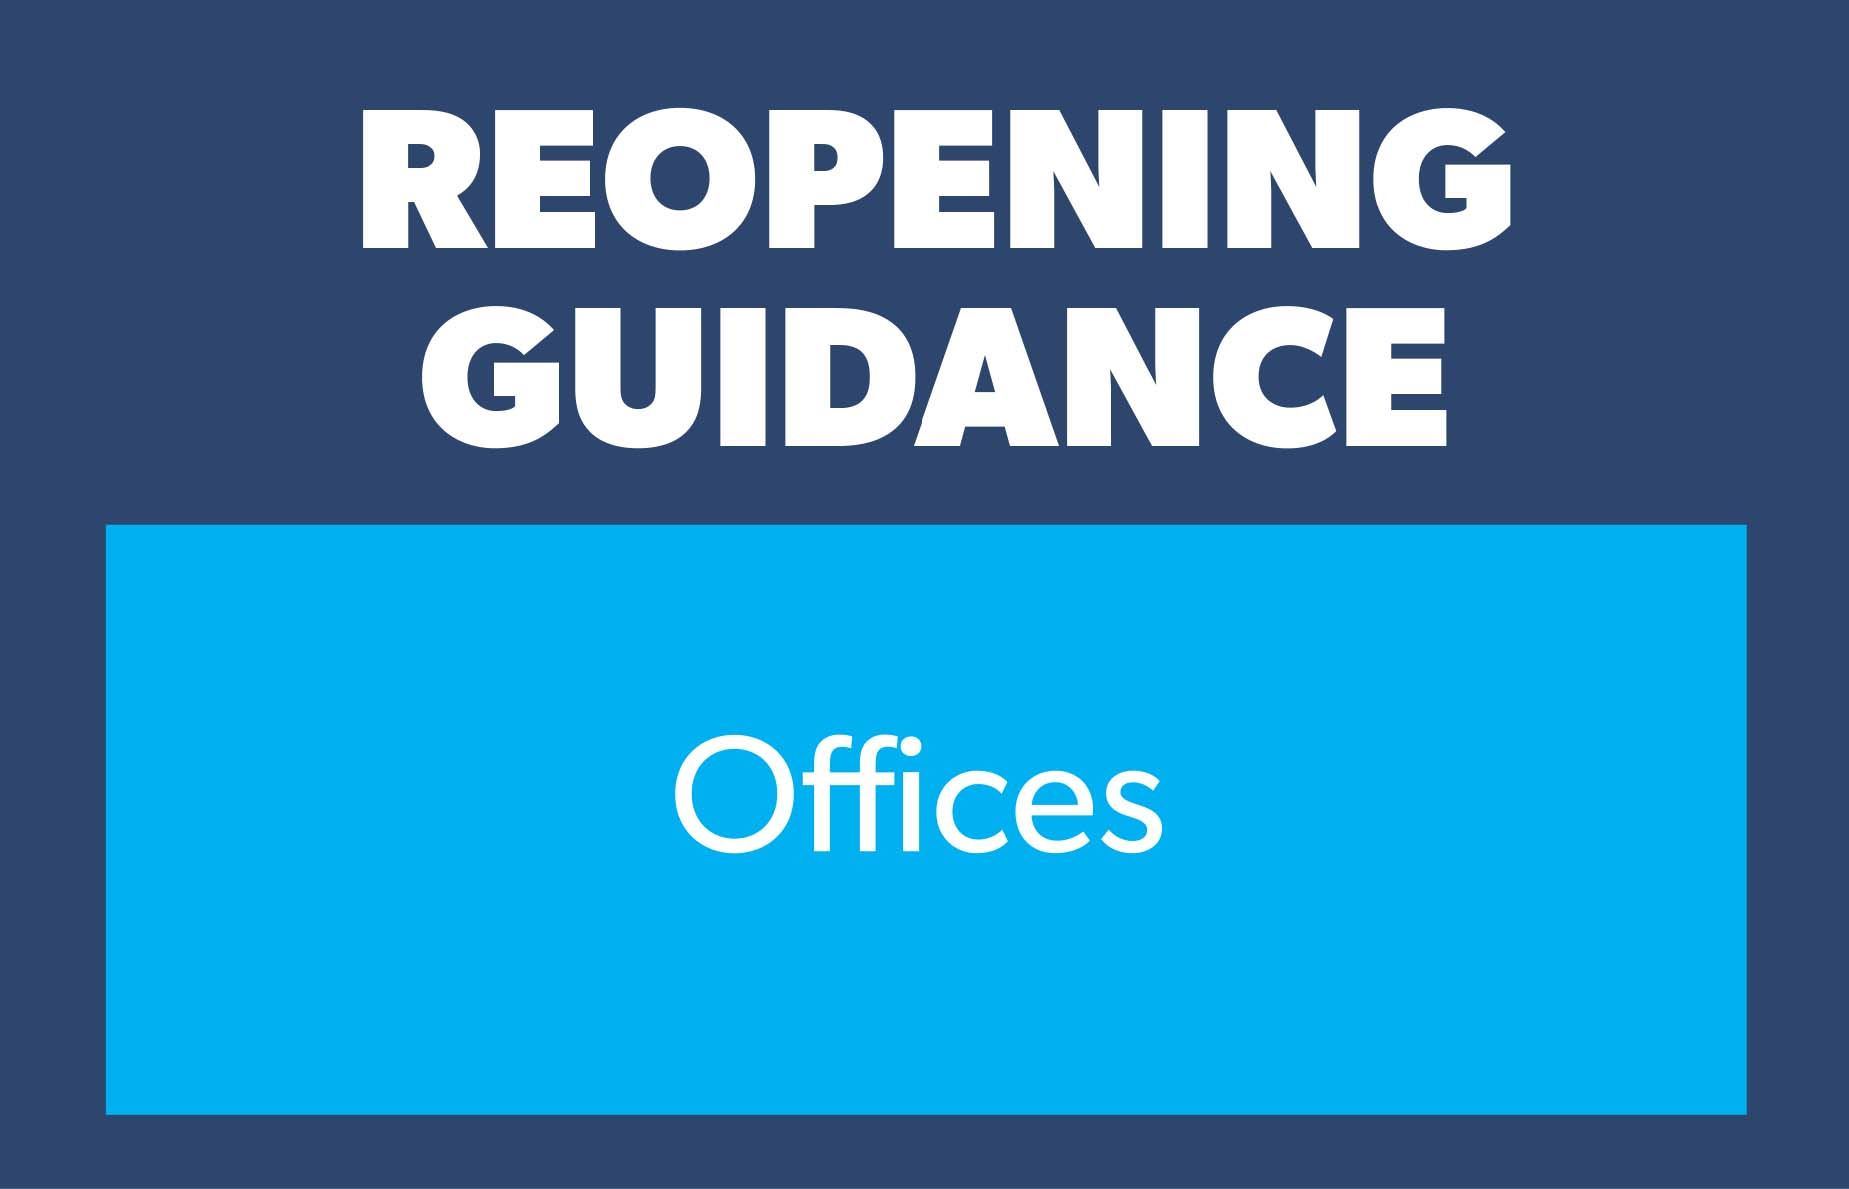 Guidance offices